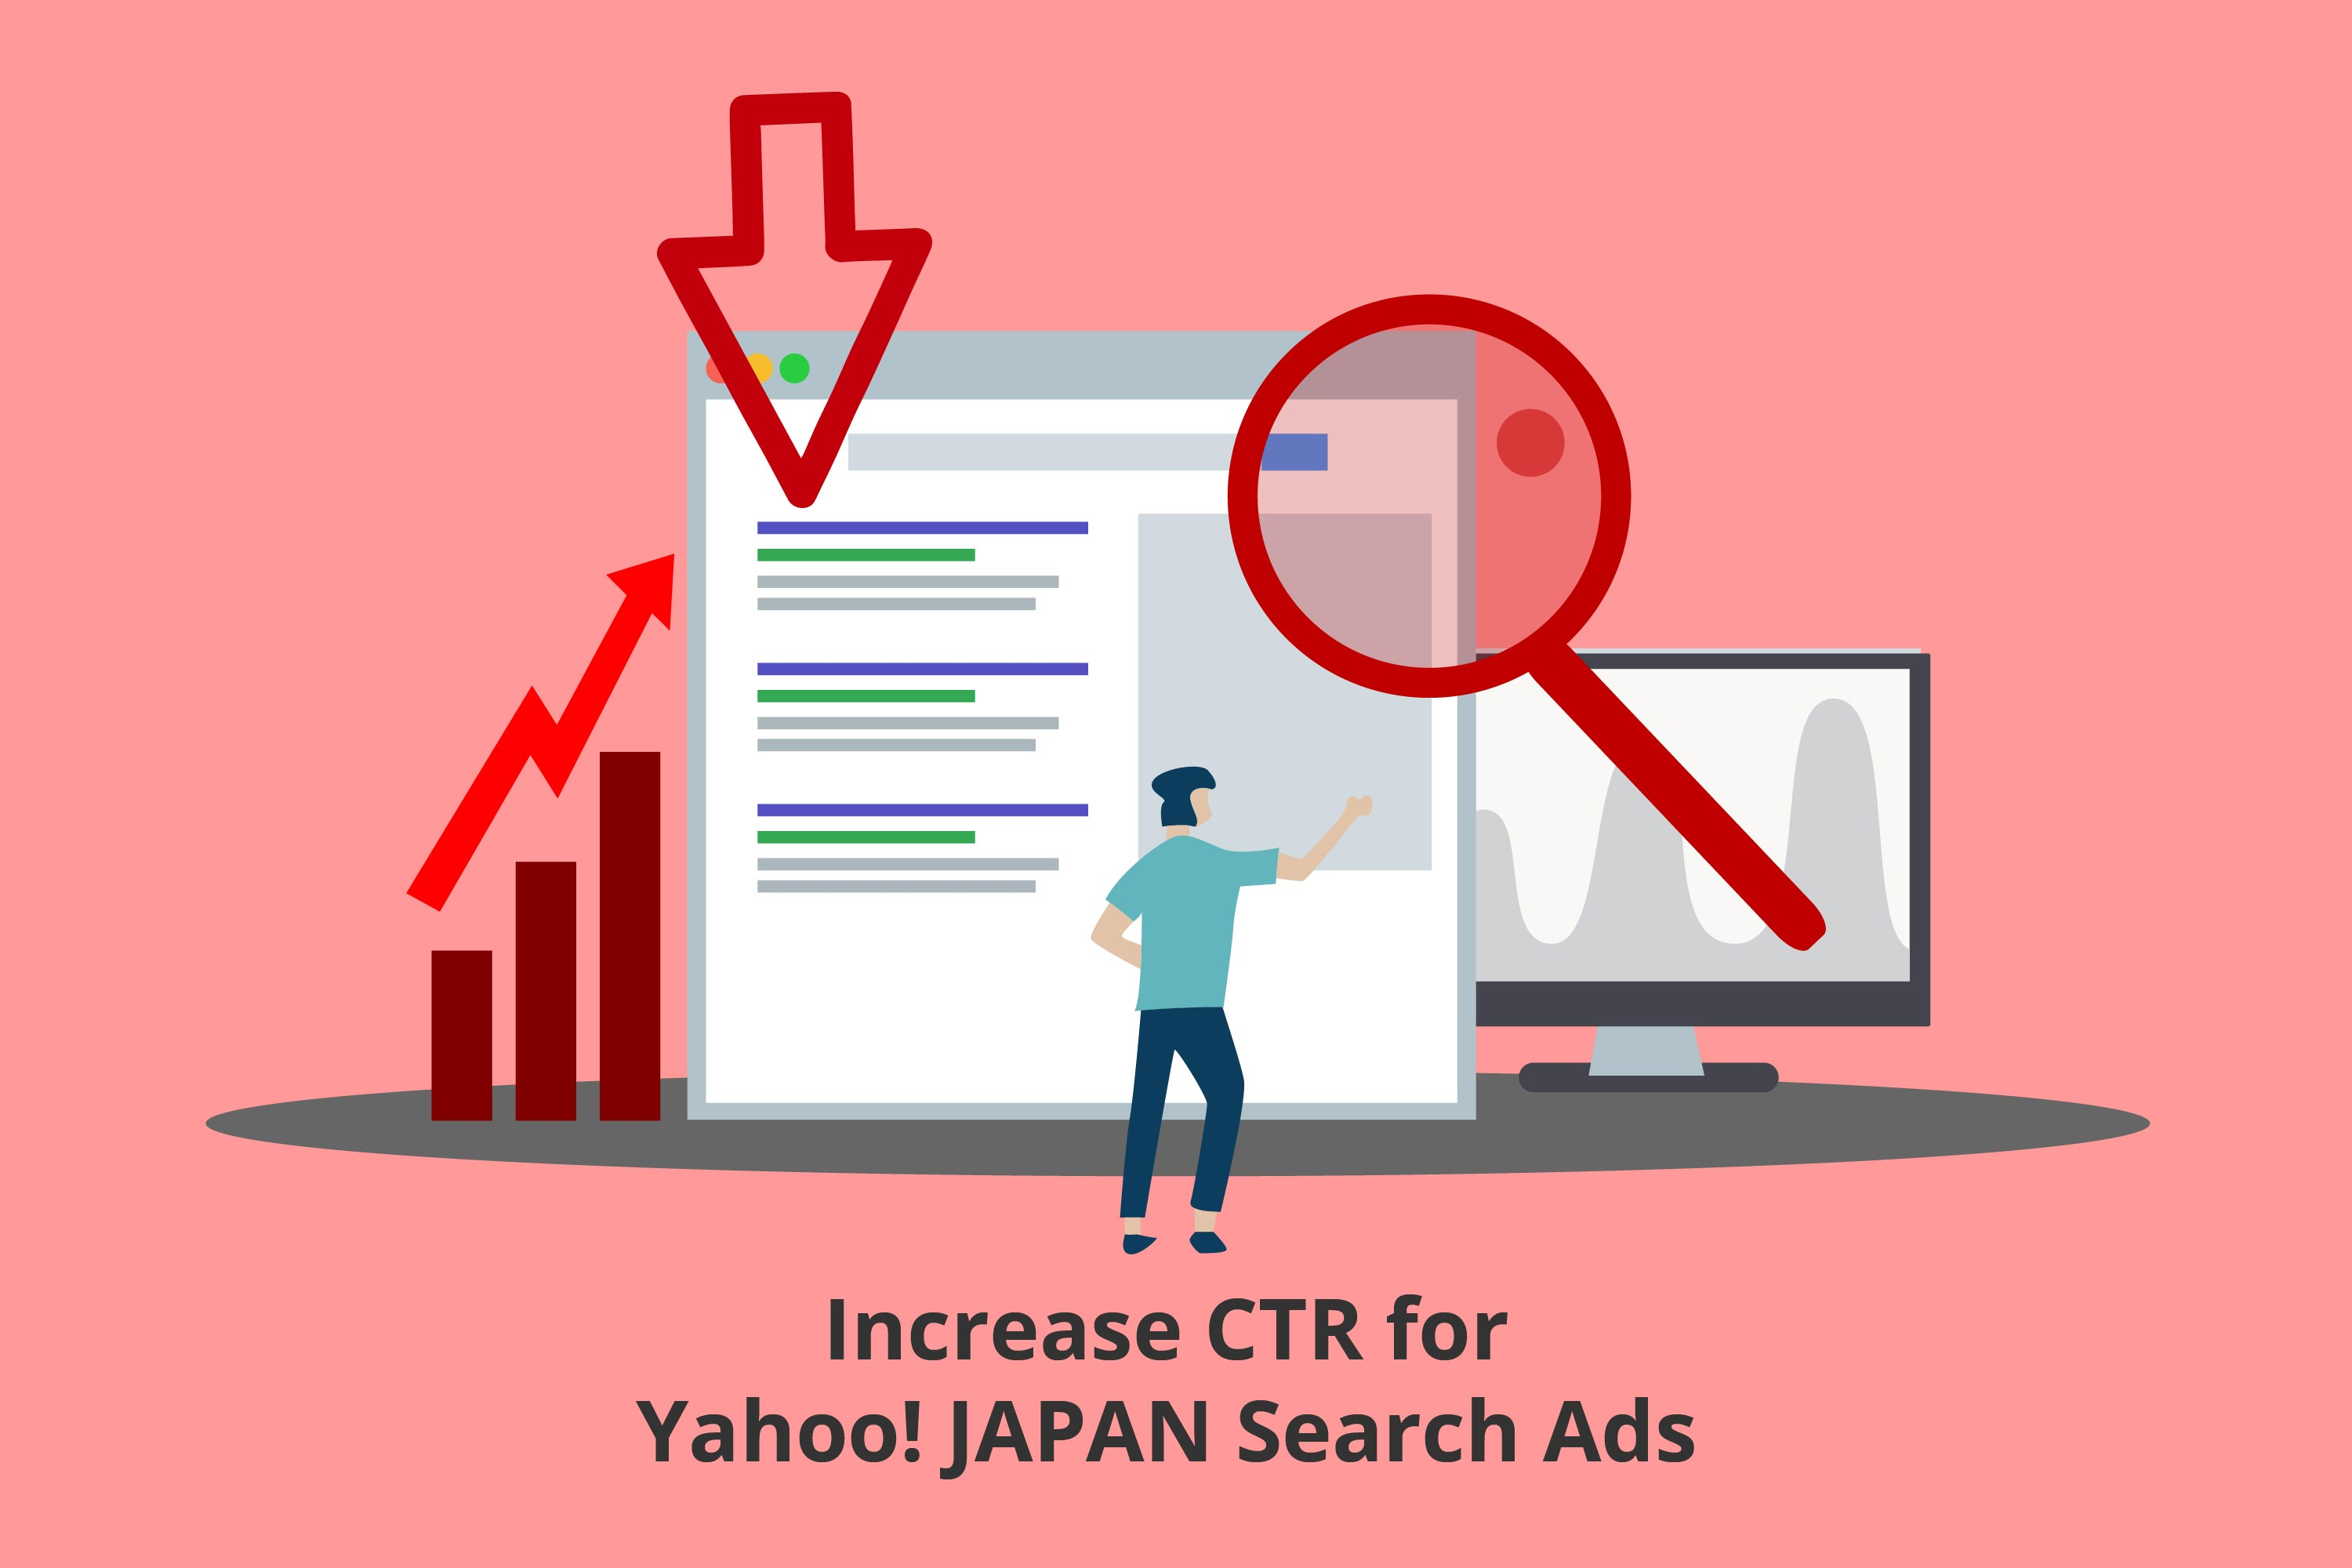 Increase CTR On Yahoo! JAPAN Search Ads - Digital Marketing For Asia